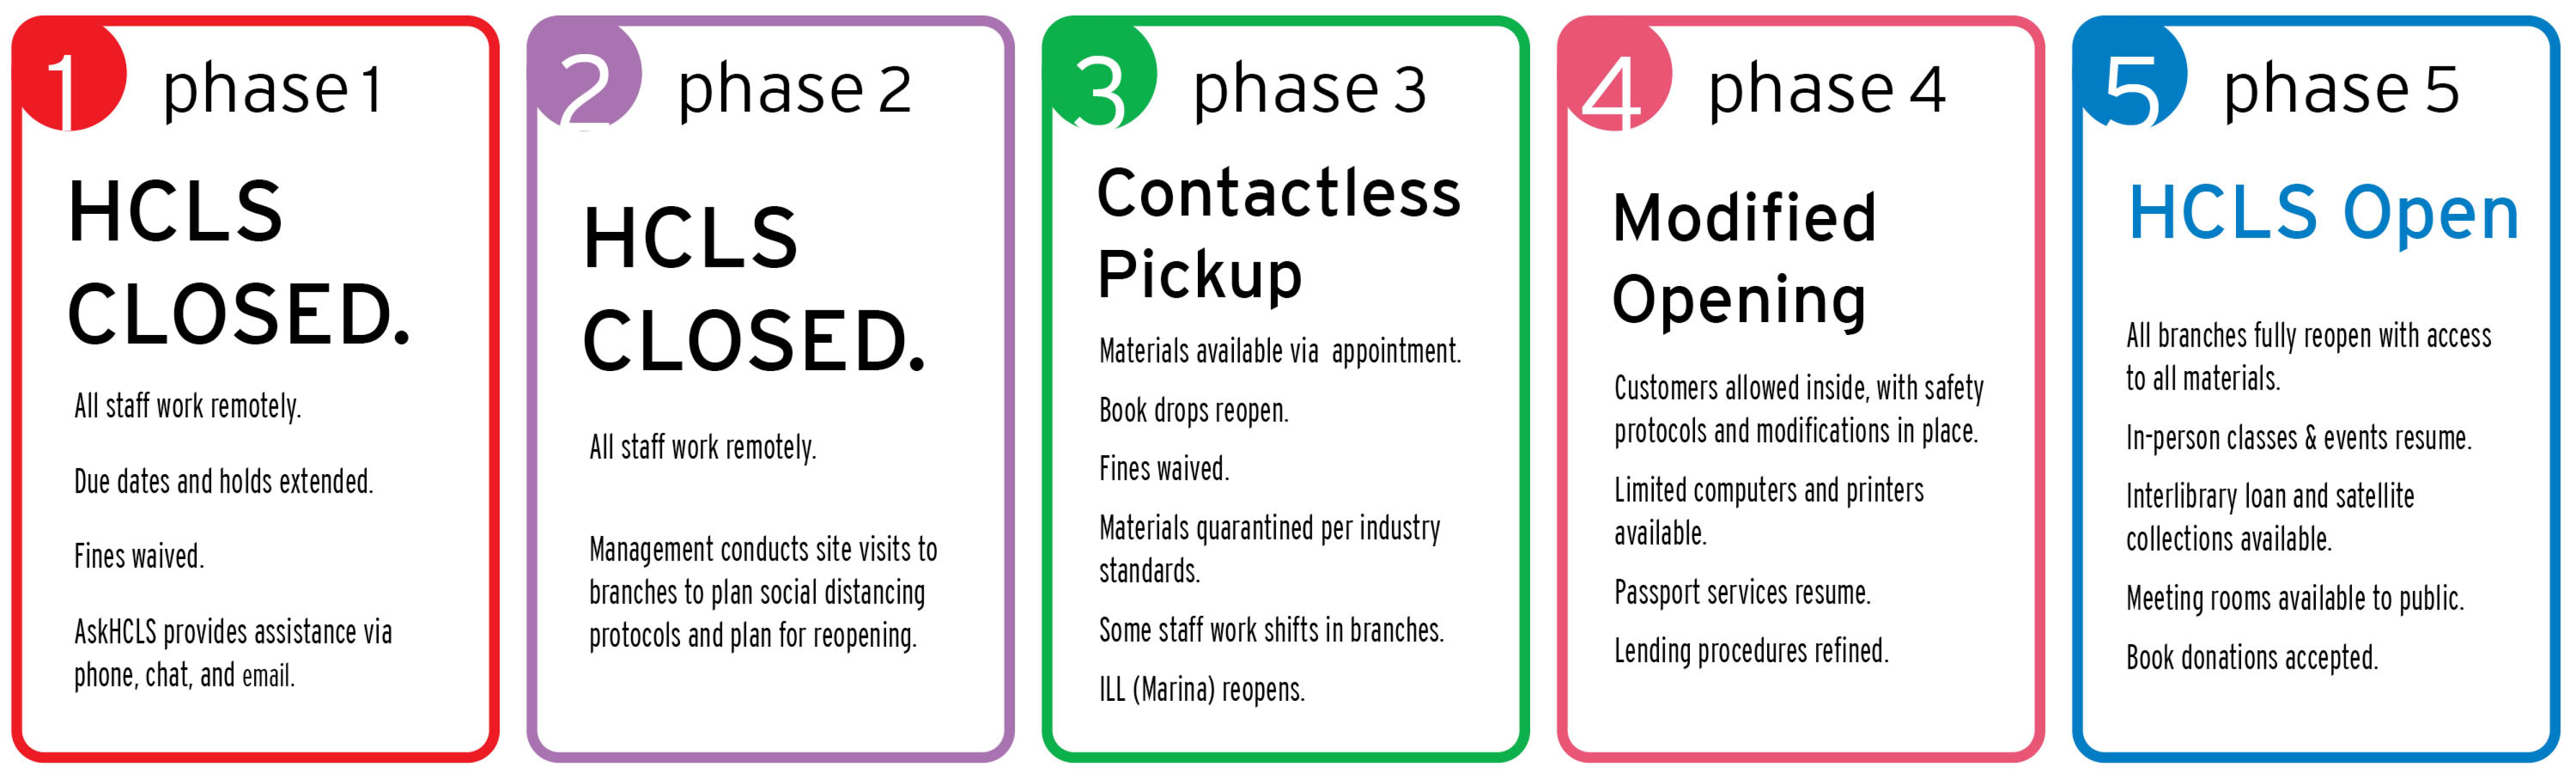 Phase 1 - HCLS closed. Phase 2 - HCLS closed. Phase 3 - Contactless pickup. Phase 4 - Modified opening. Phase 5 - HCLS open.